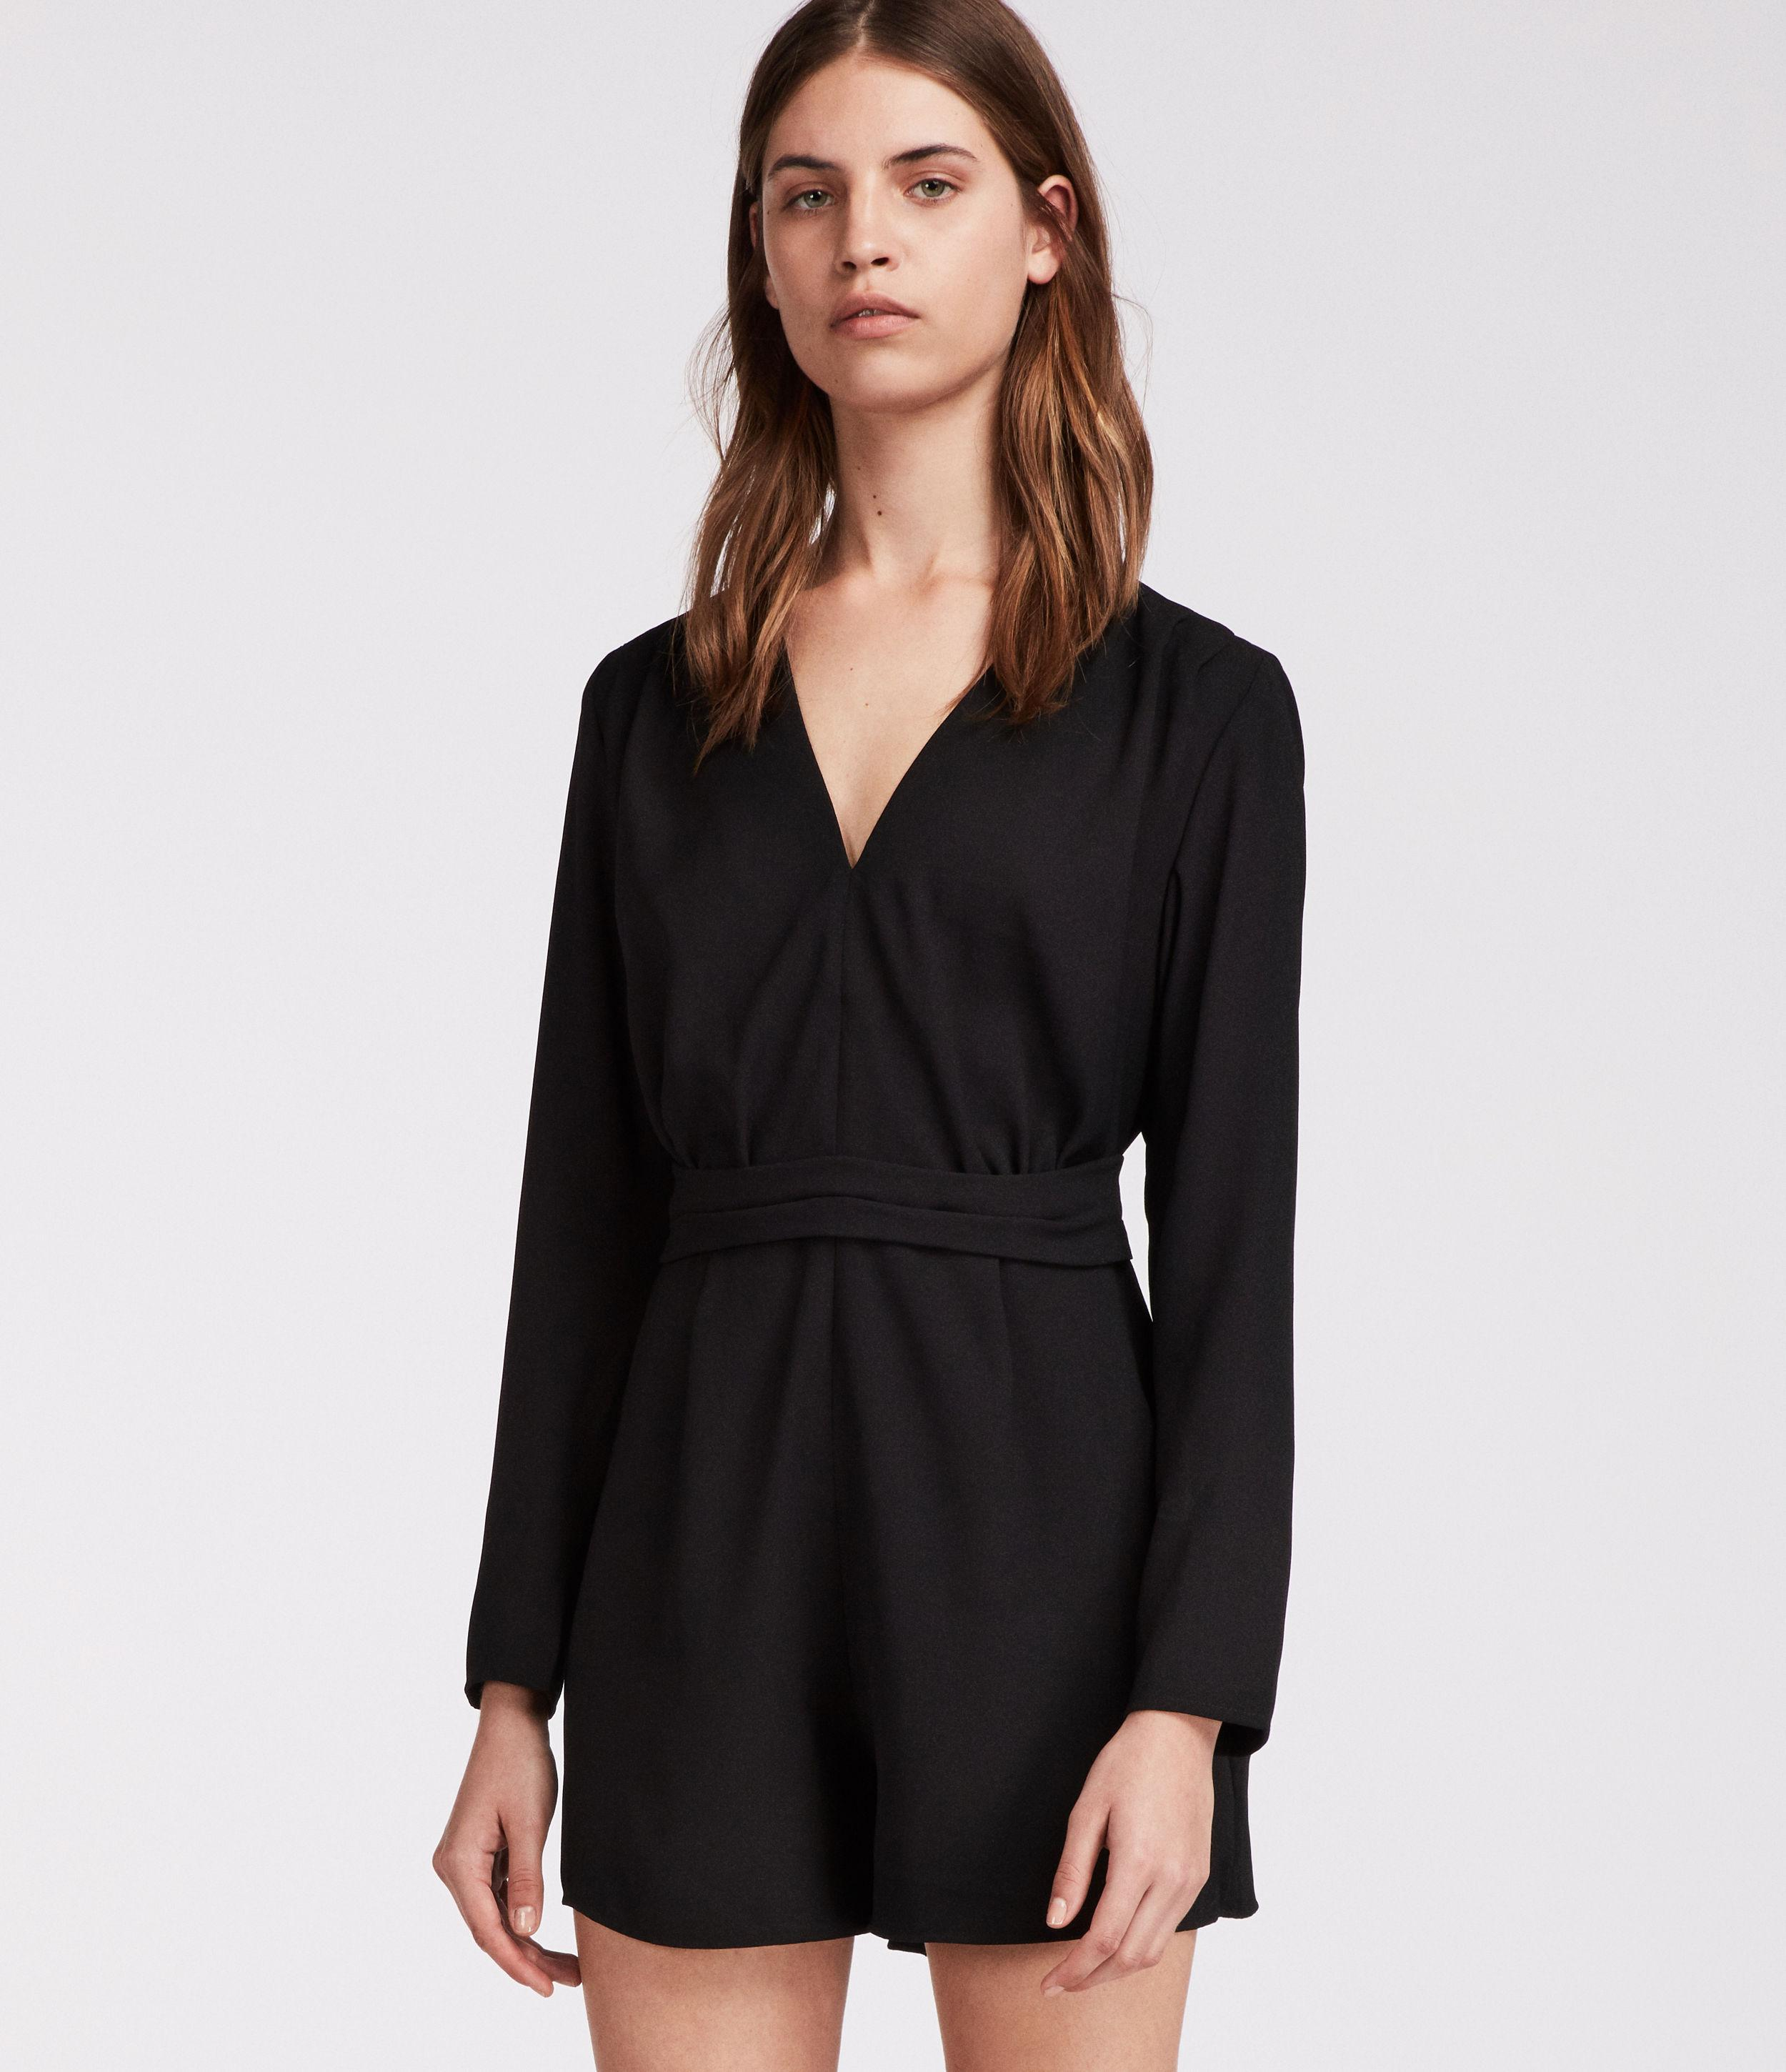 b08b6ac91e4b Lyst - AllSaints Karine Playsuit in Black - Save 34%